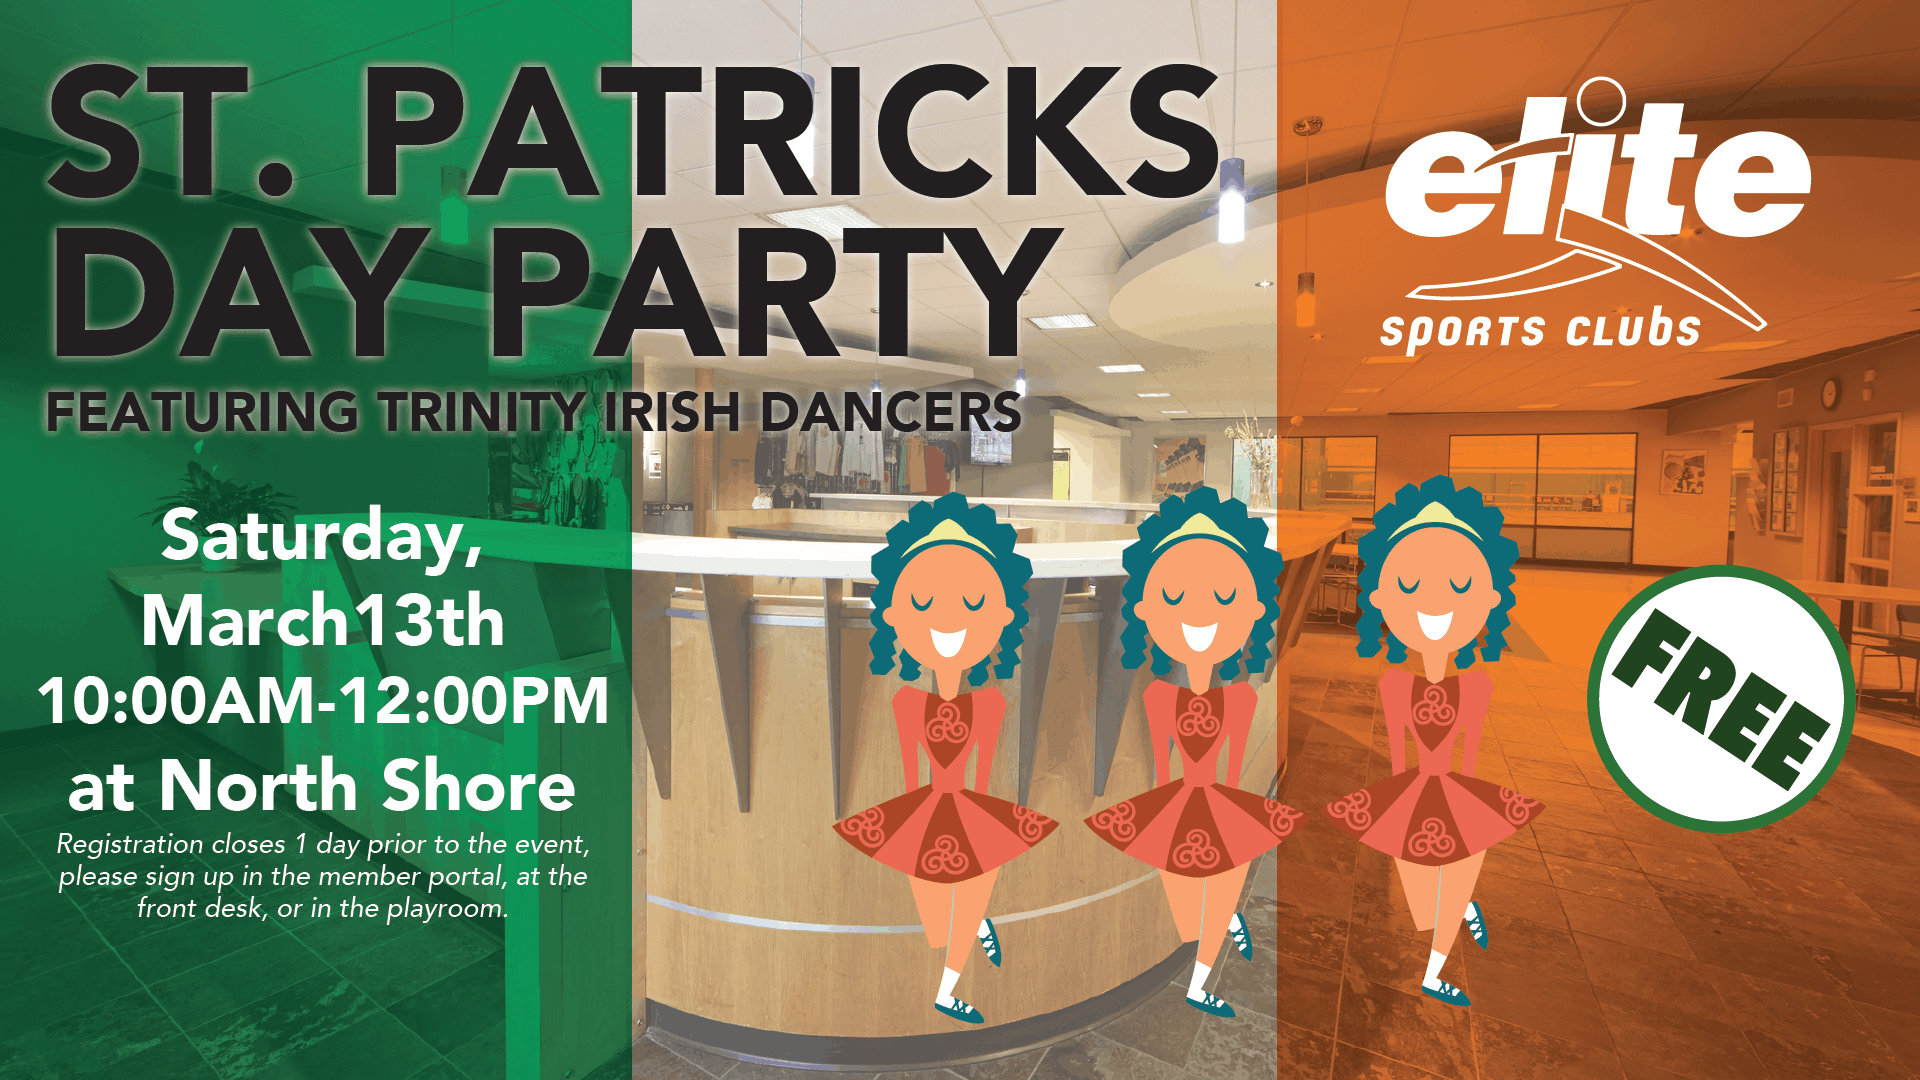 St Patricks Day Party feat Trinity Irish Dancers - Elite North Shore - March 2021